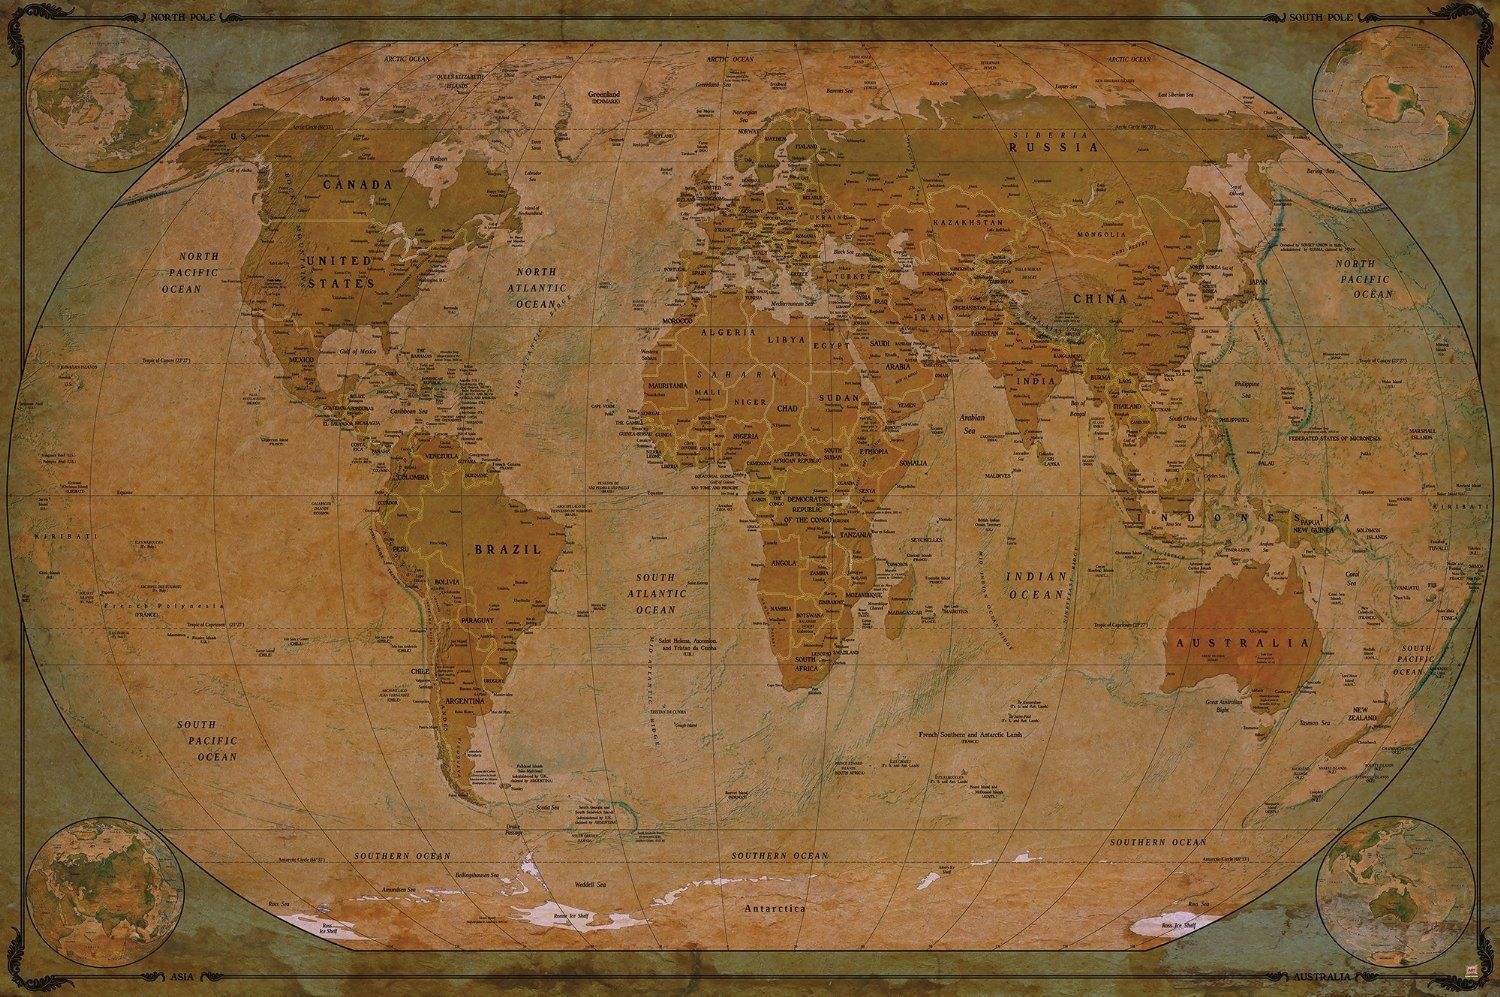 carte du monde carte du monde historique sur papier peint motif r tro vintage xxl carte. Black Bedroom Furniture Sets. Home Design Ideas